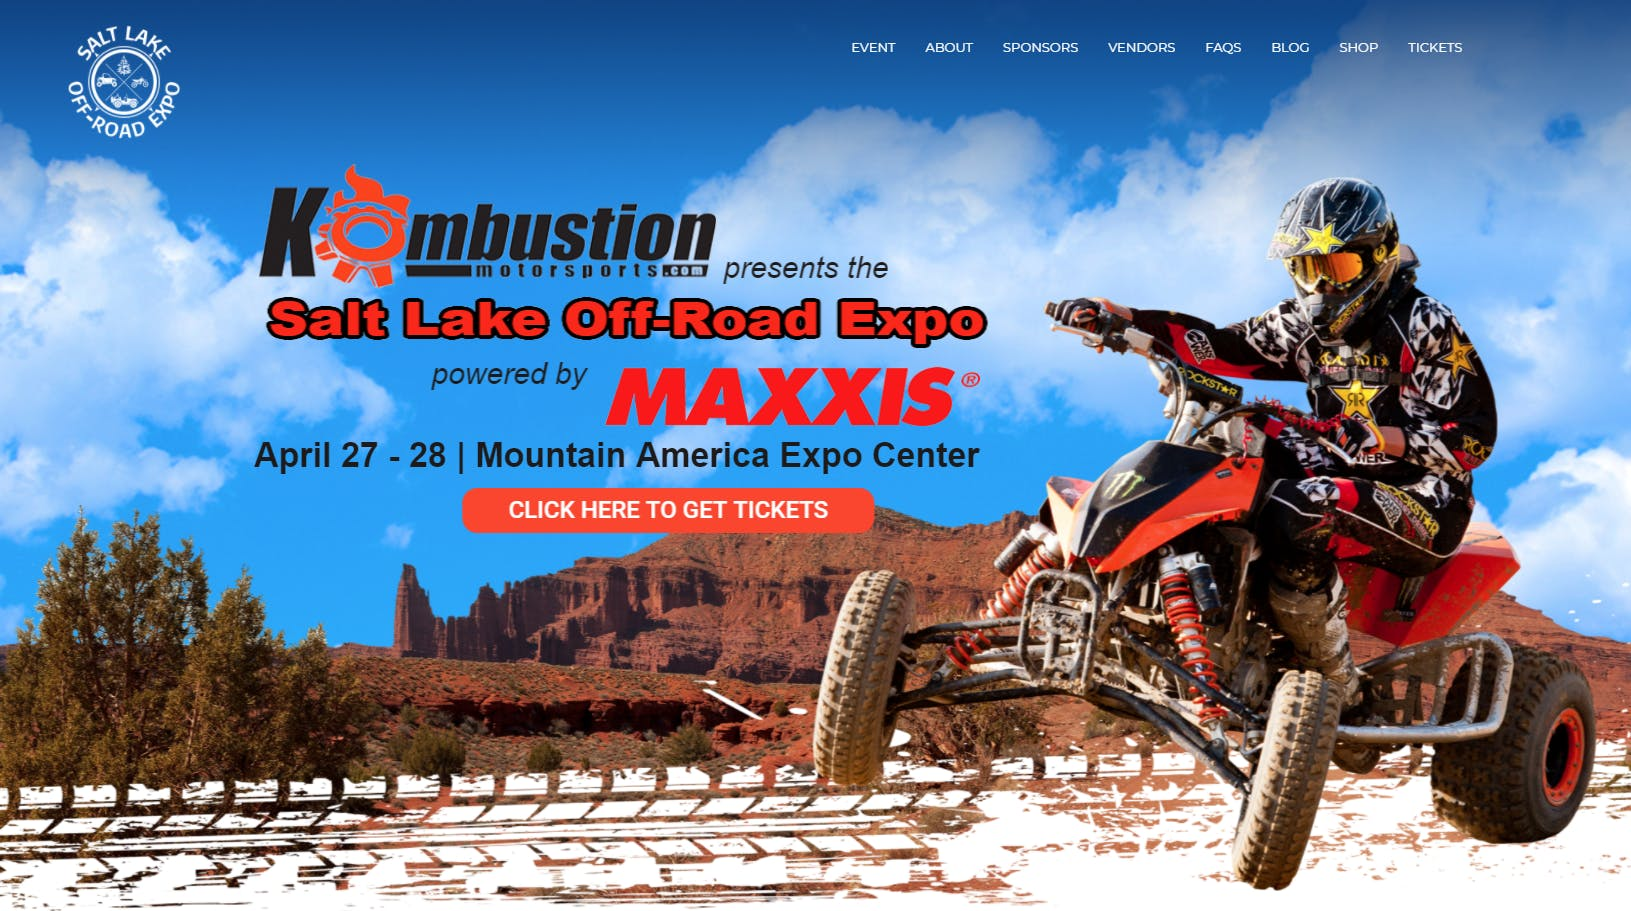 Salt Lake Off-Road Expo - Complimentary SOLIDWORKS Training Seminar